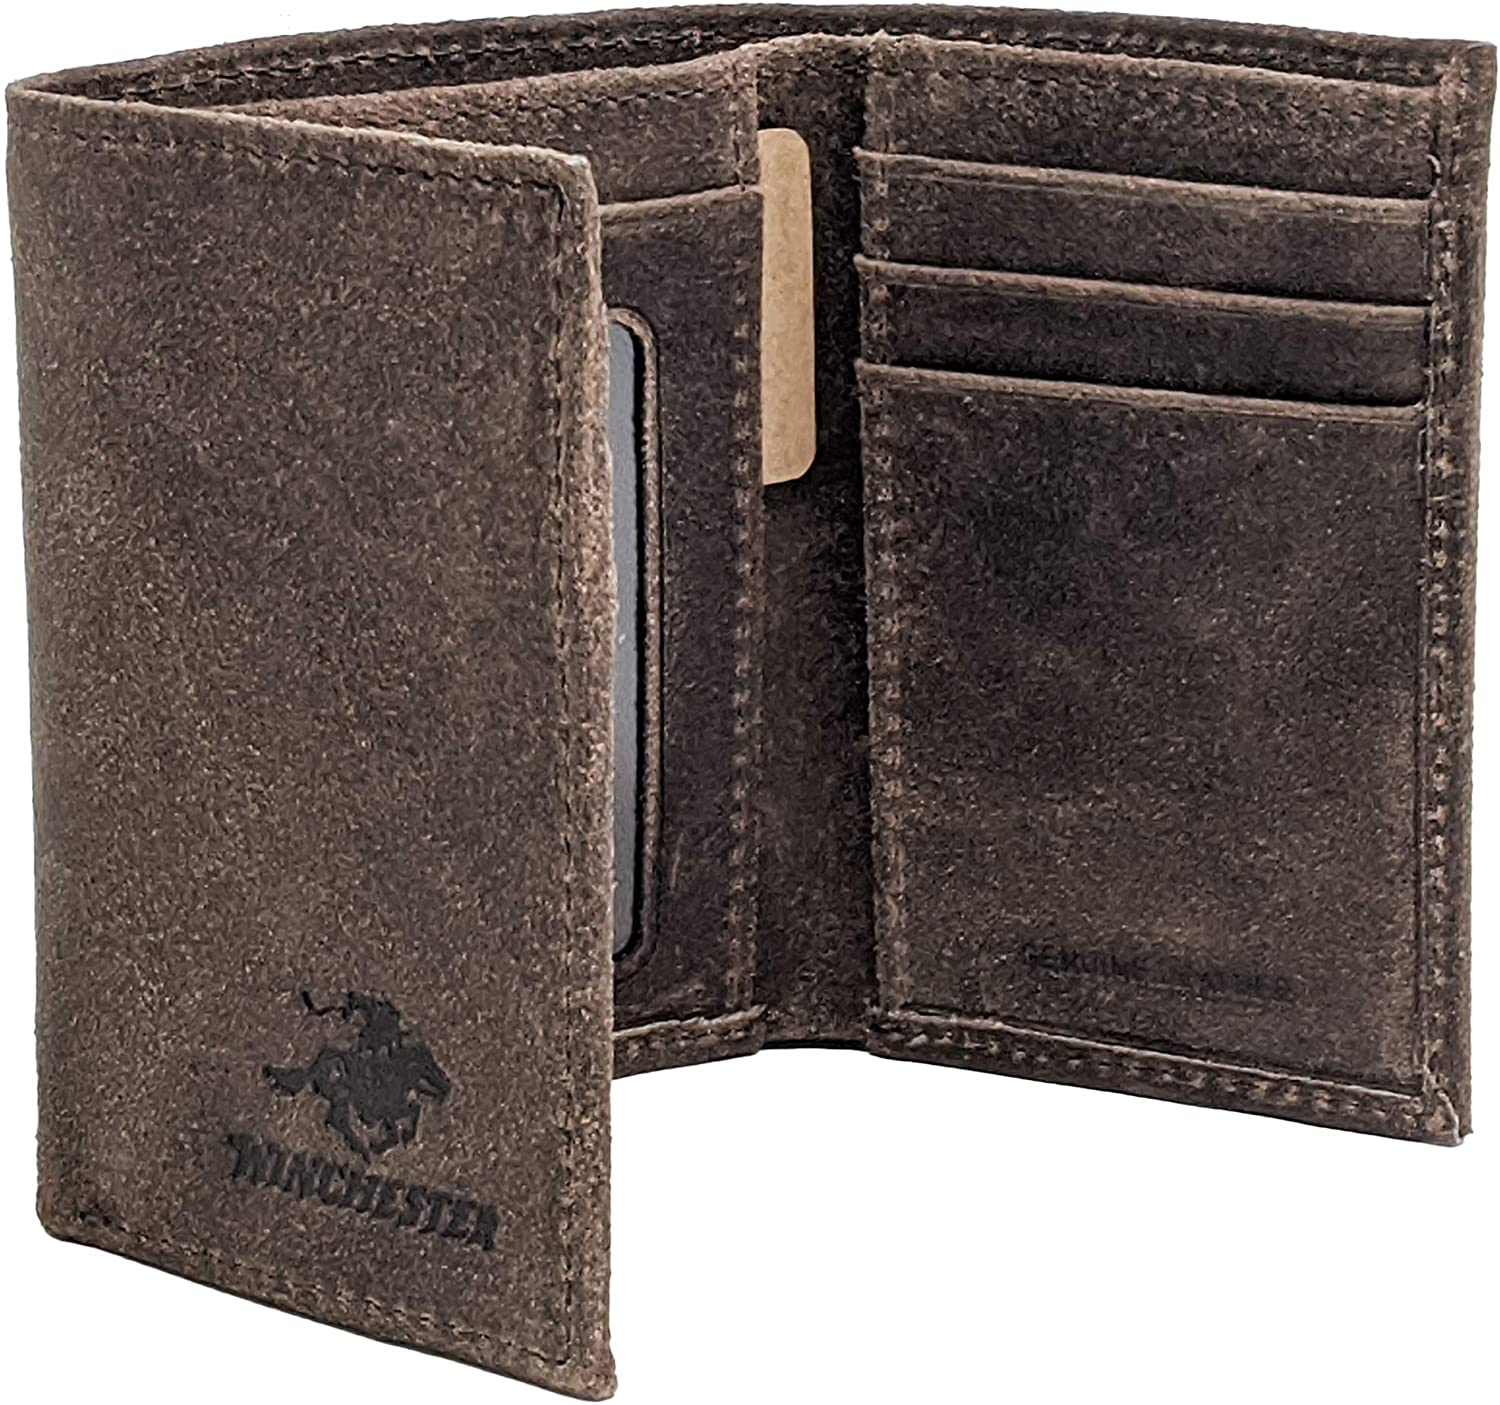 mens trifold wallet